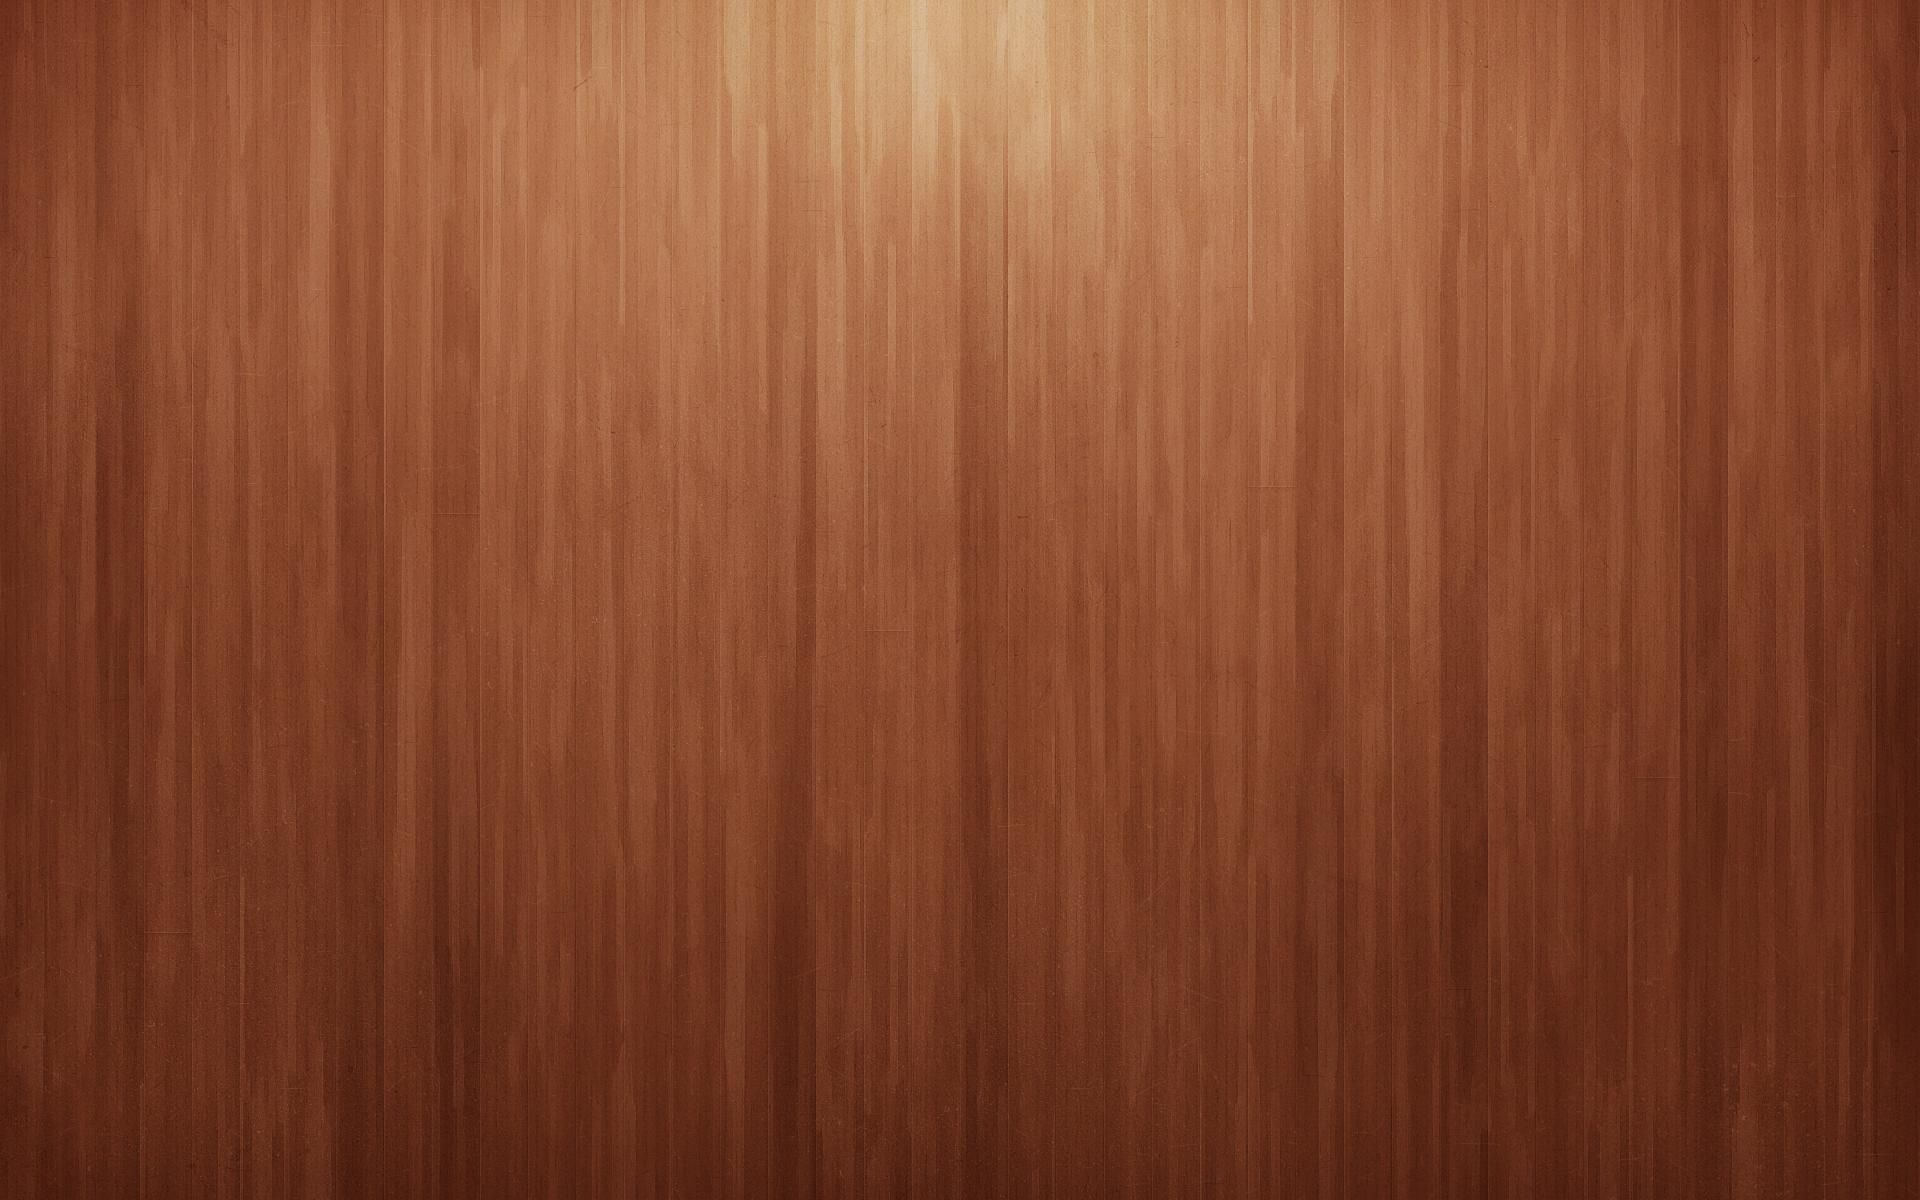 collection of wood wallpaper hd on hdwallpapers × wood | wallpapers